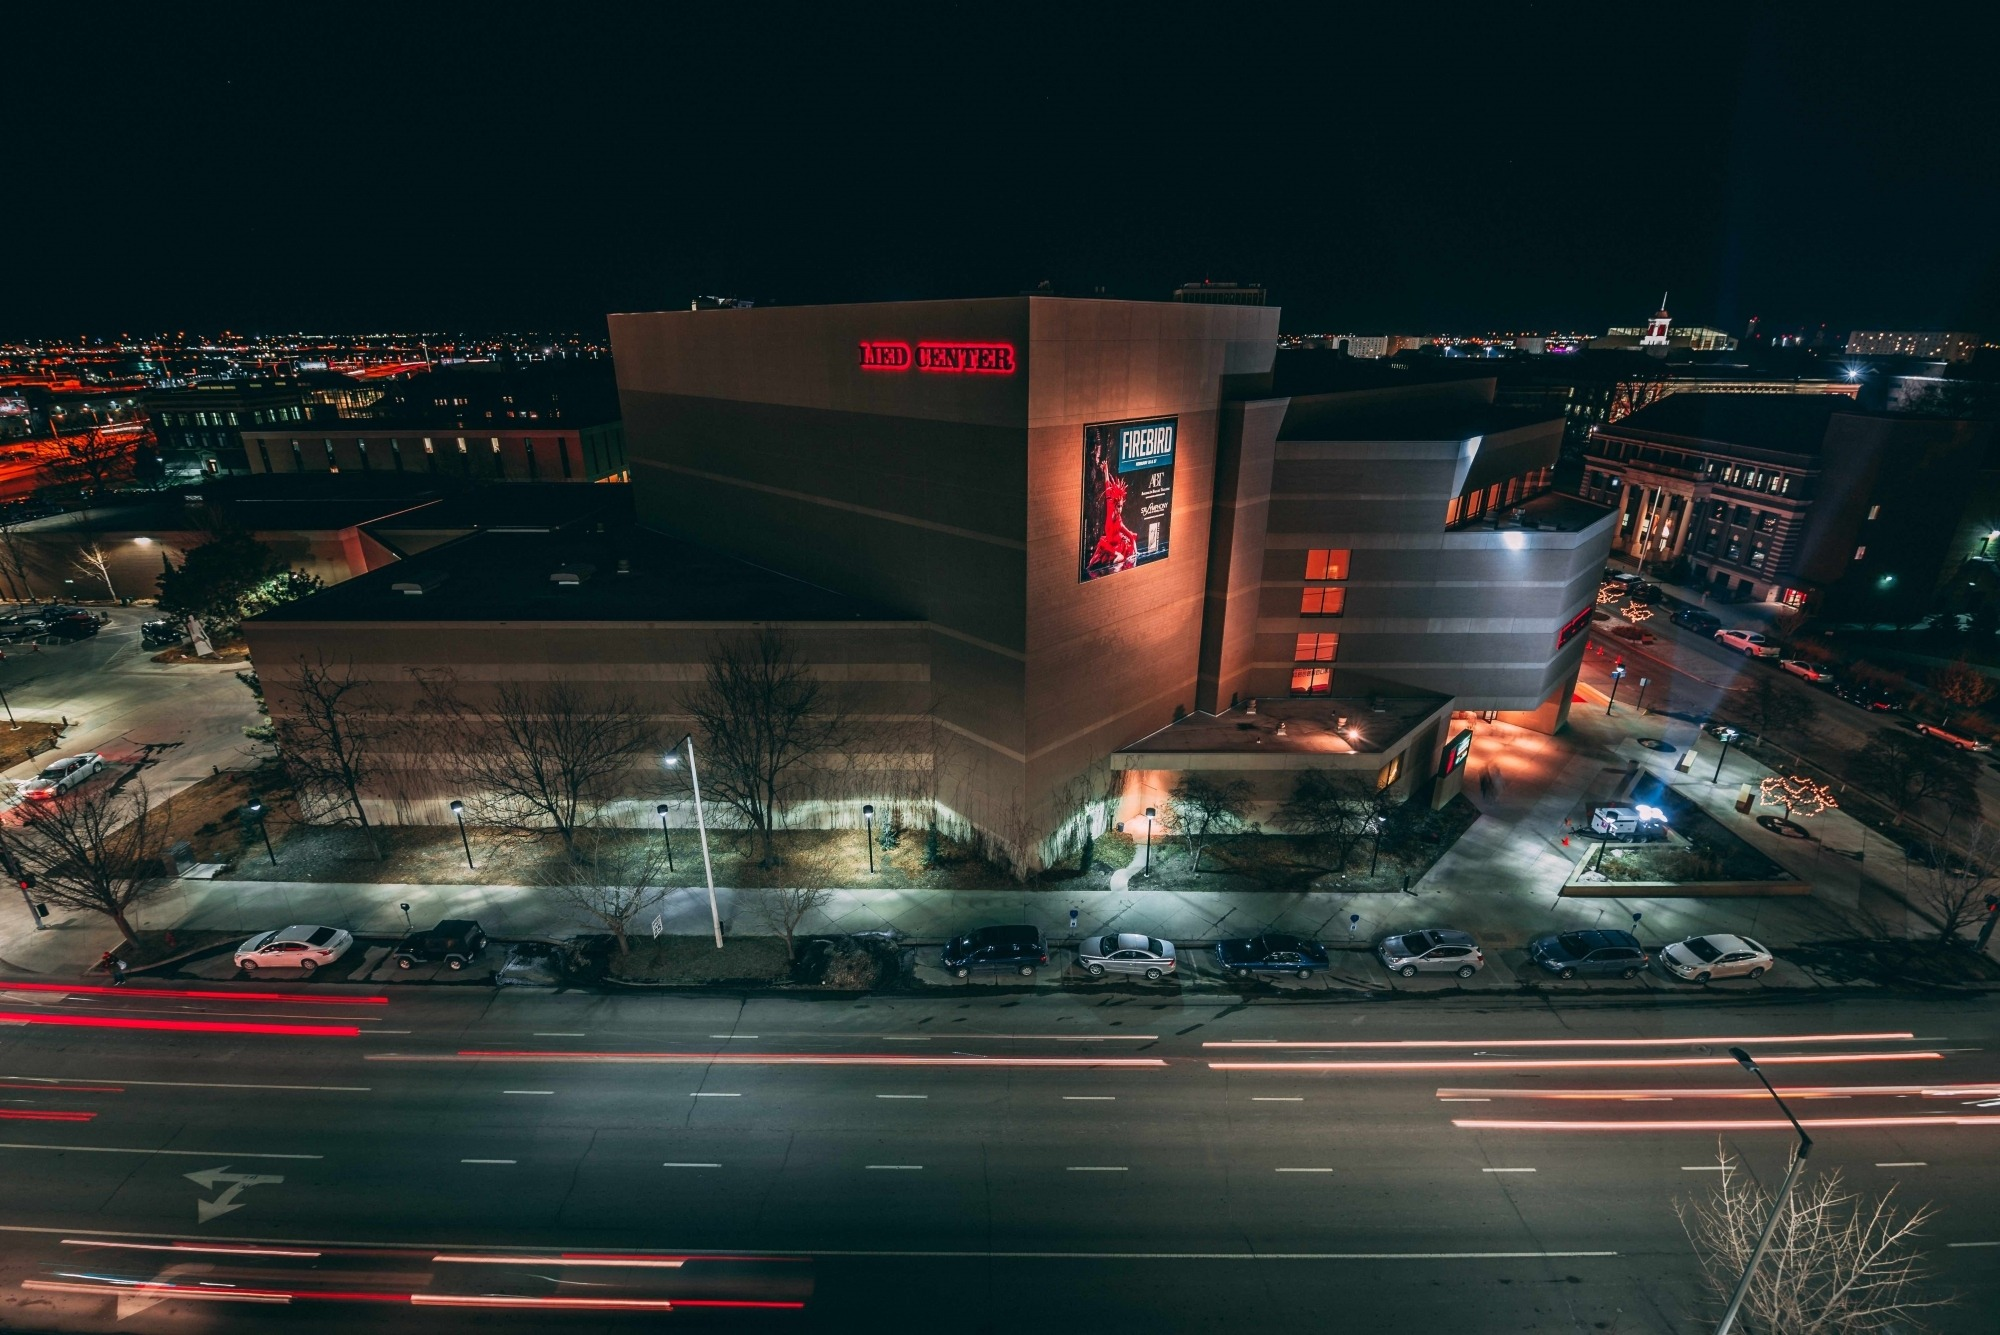 Image of the Lied Center building at night taken from the roof of a nearby building showing searchlights pointed towards the sky and car lights streaking across the road